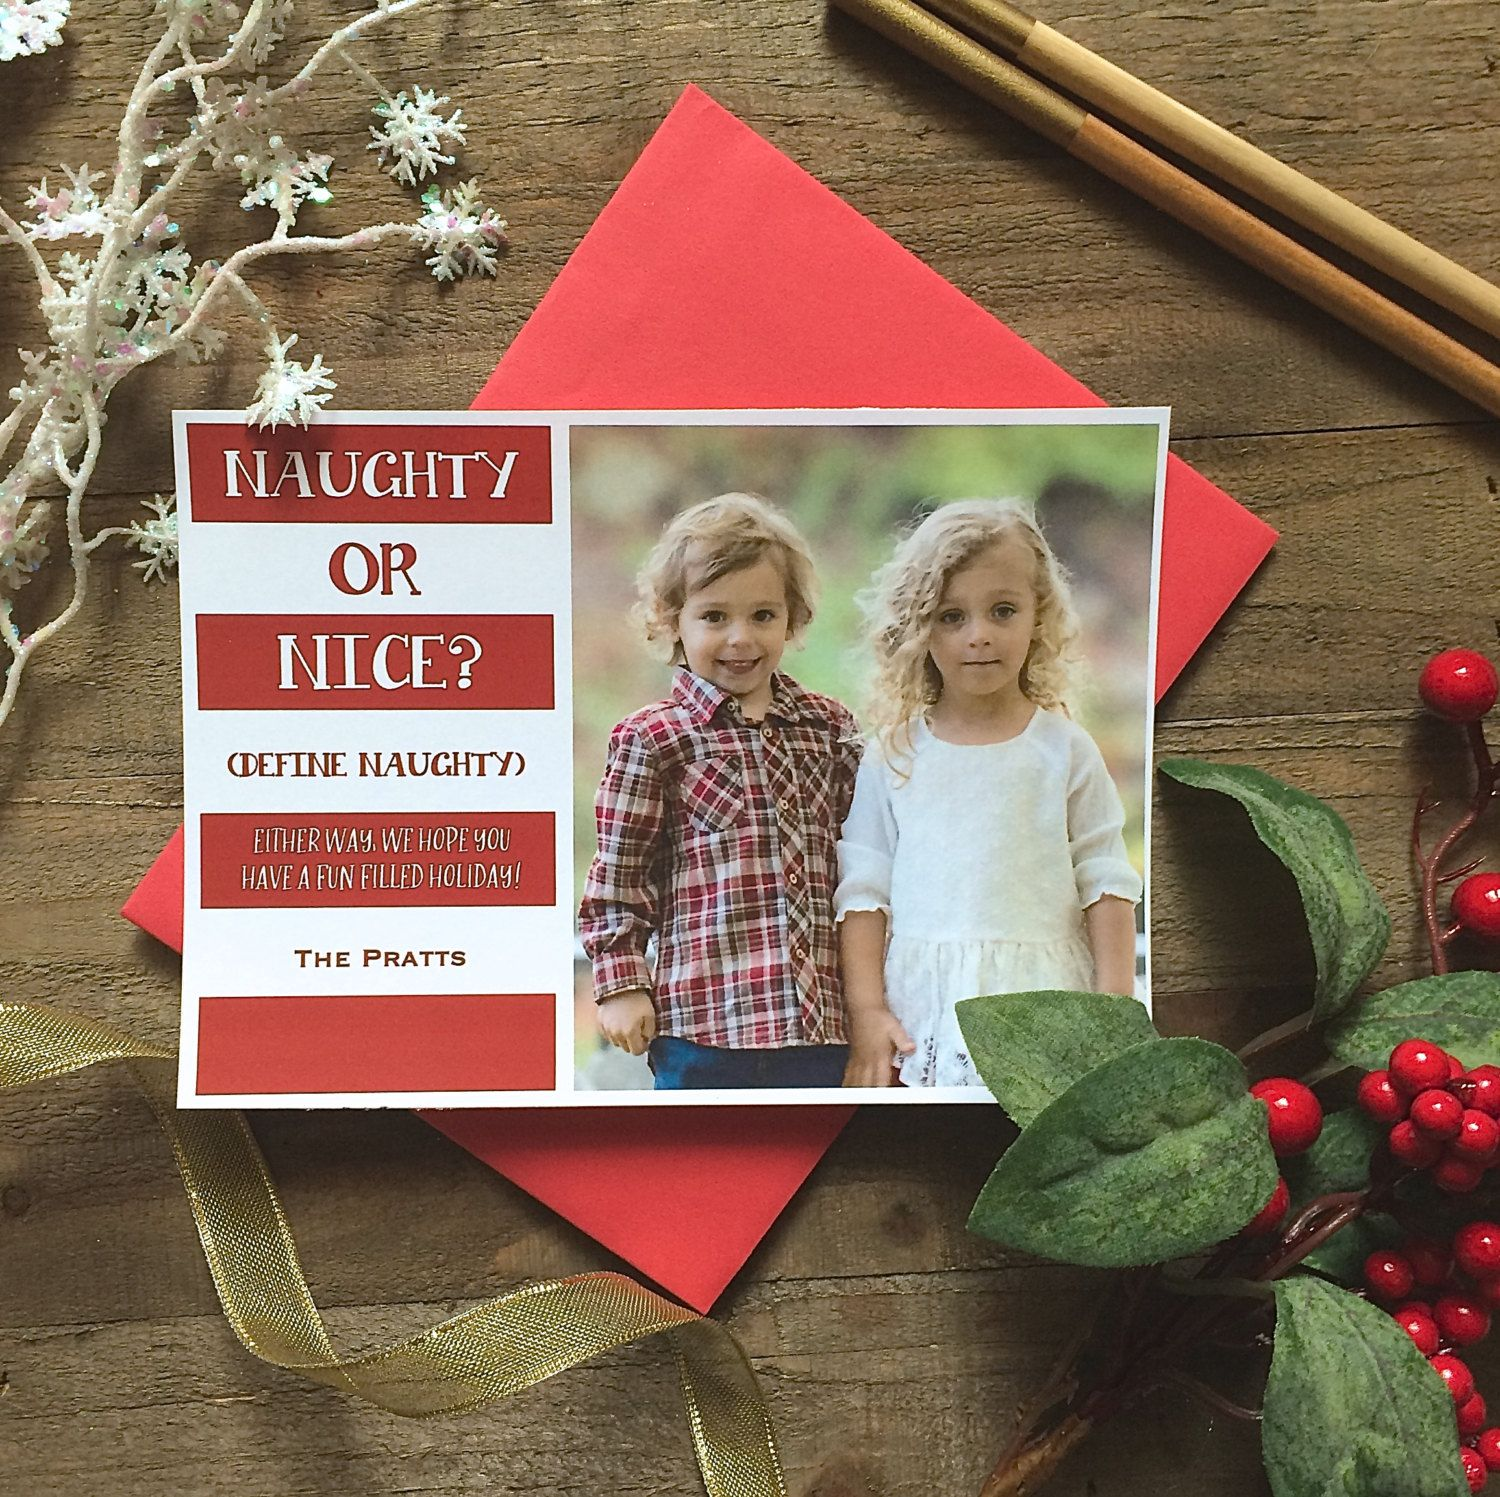 5 x 7 Custom Digital or Print Naughty or Nice Christmas Greeting/ Photo Christmas Greeting Card/ FREE SHIPPING by ArtPaperScissorsGlue on Etsy